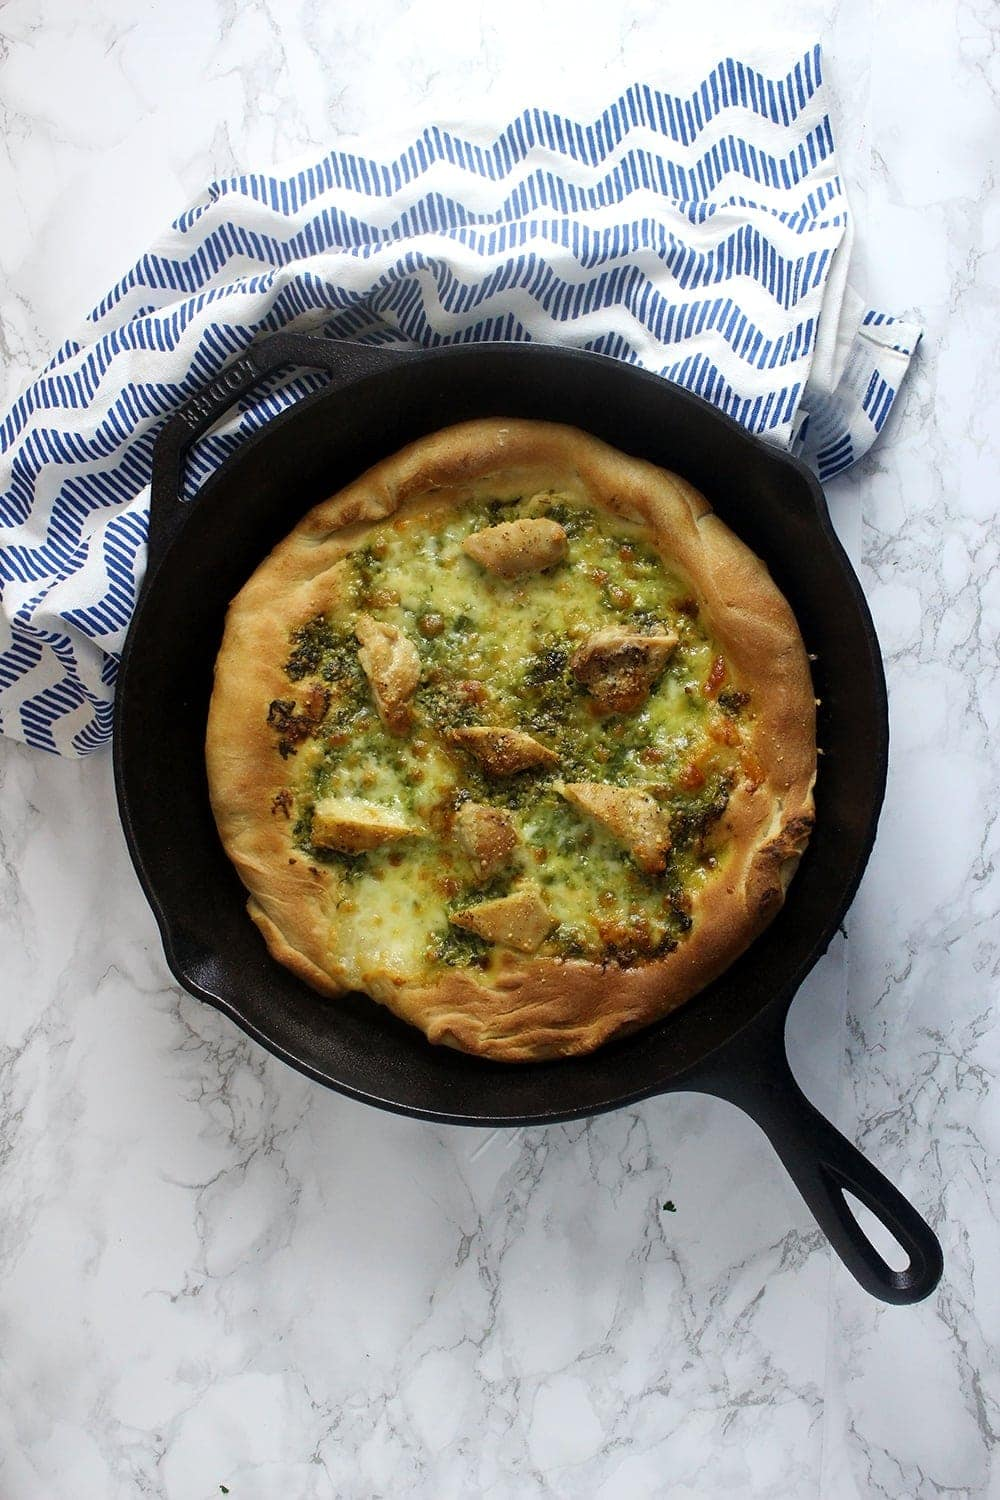 This rocket pesto chicken skillet pizza is a brilliant variation on a classic pizza. With a pesto base and a layer of mozzarella surrounding bits of chicken